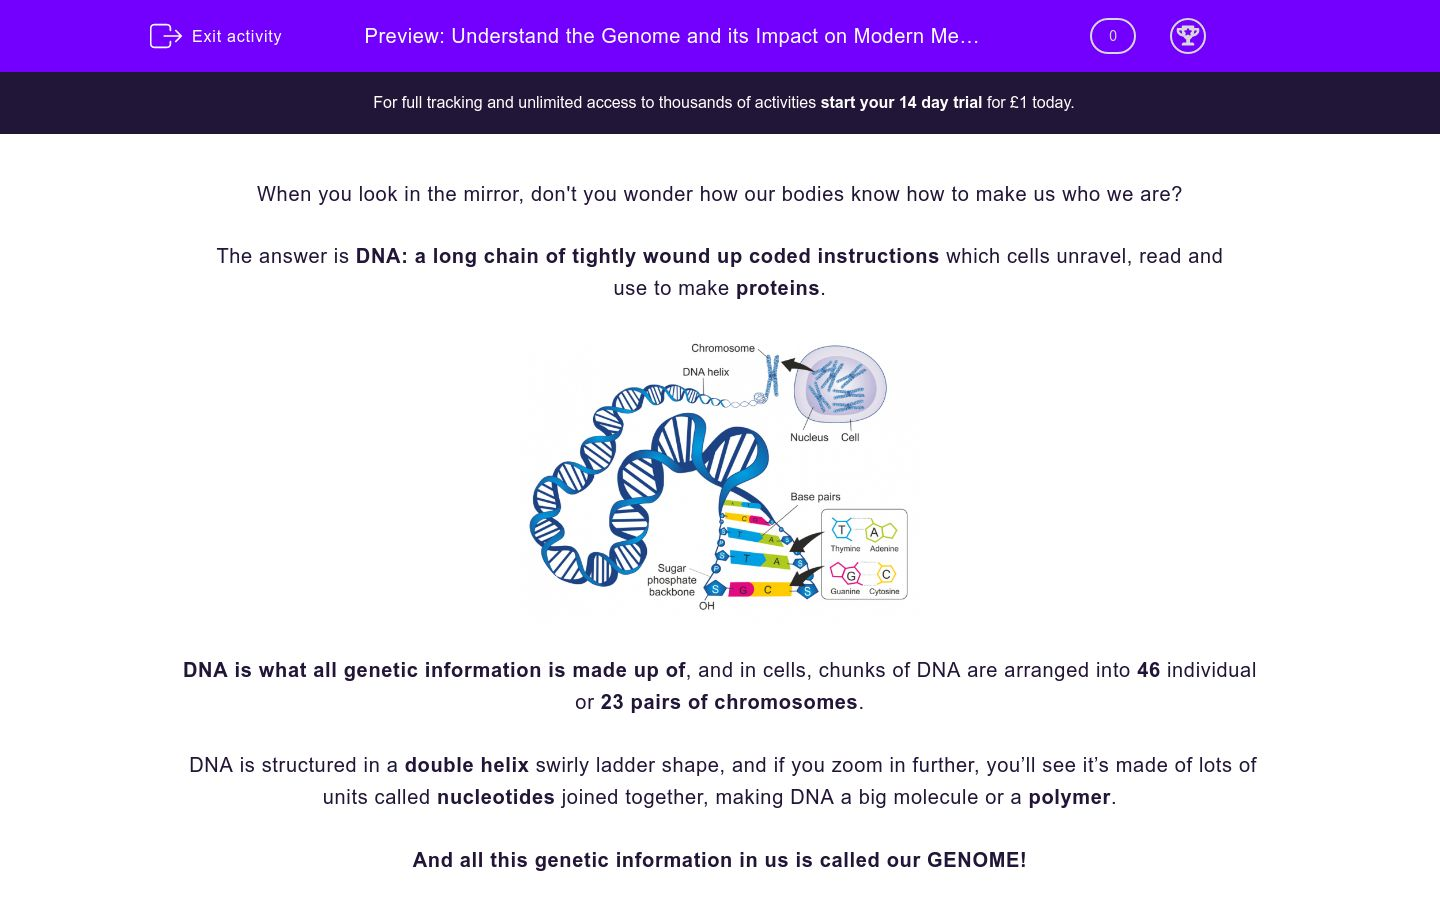 'Understand the Genome and its Impact on Modern Medicine' worksheet